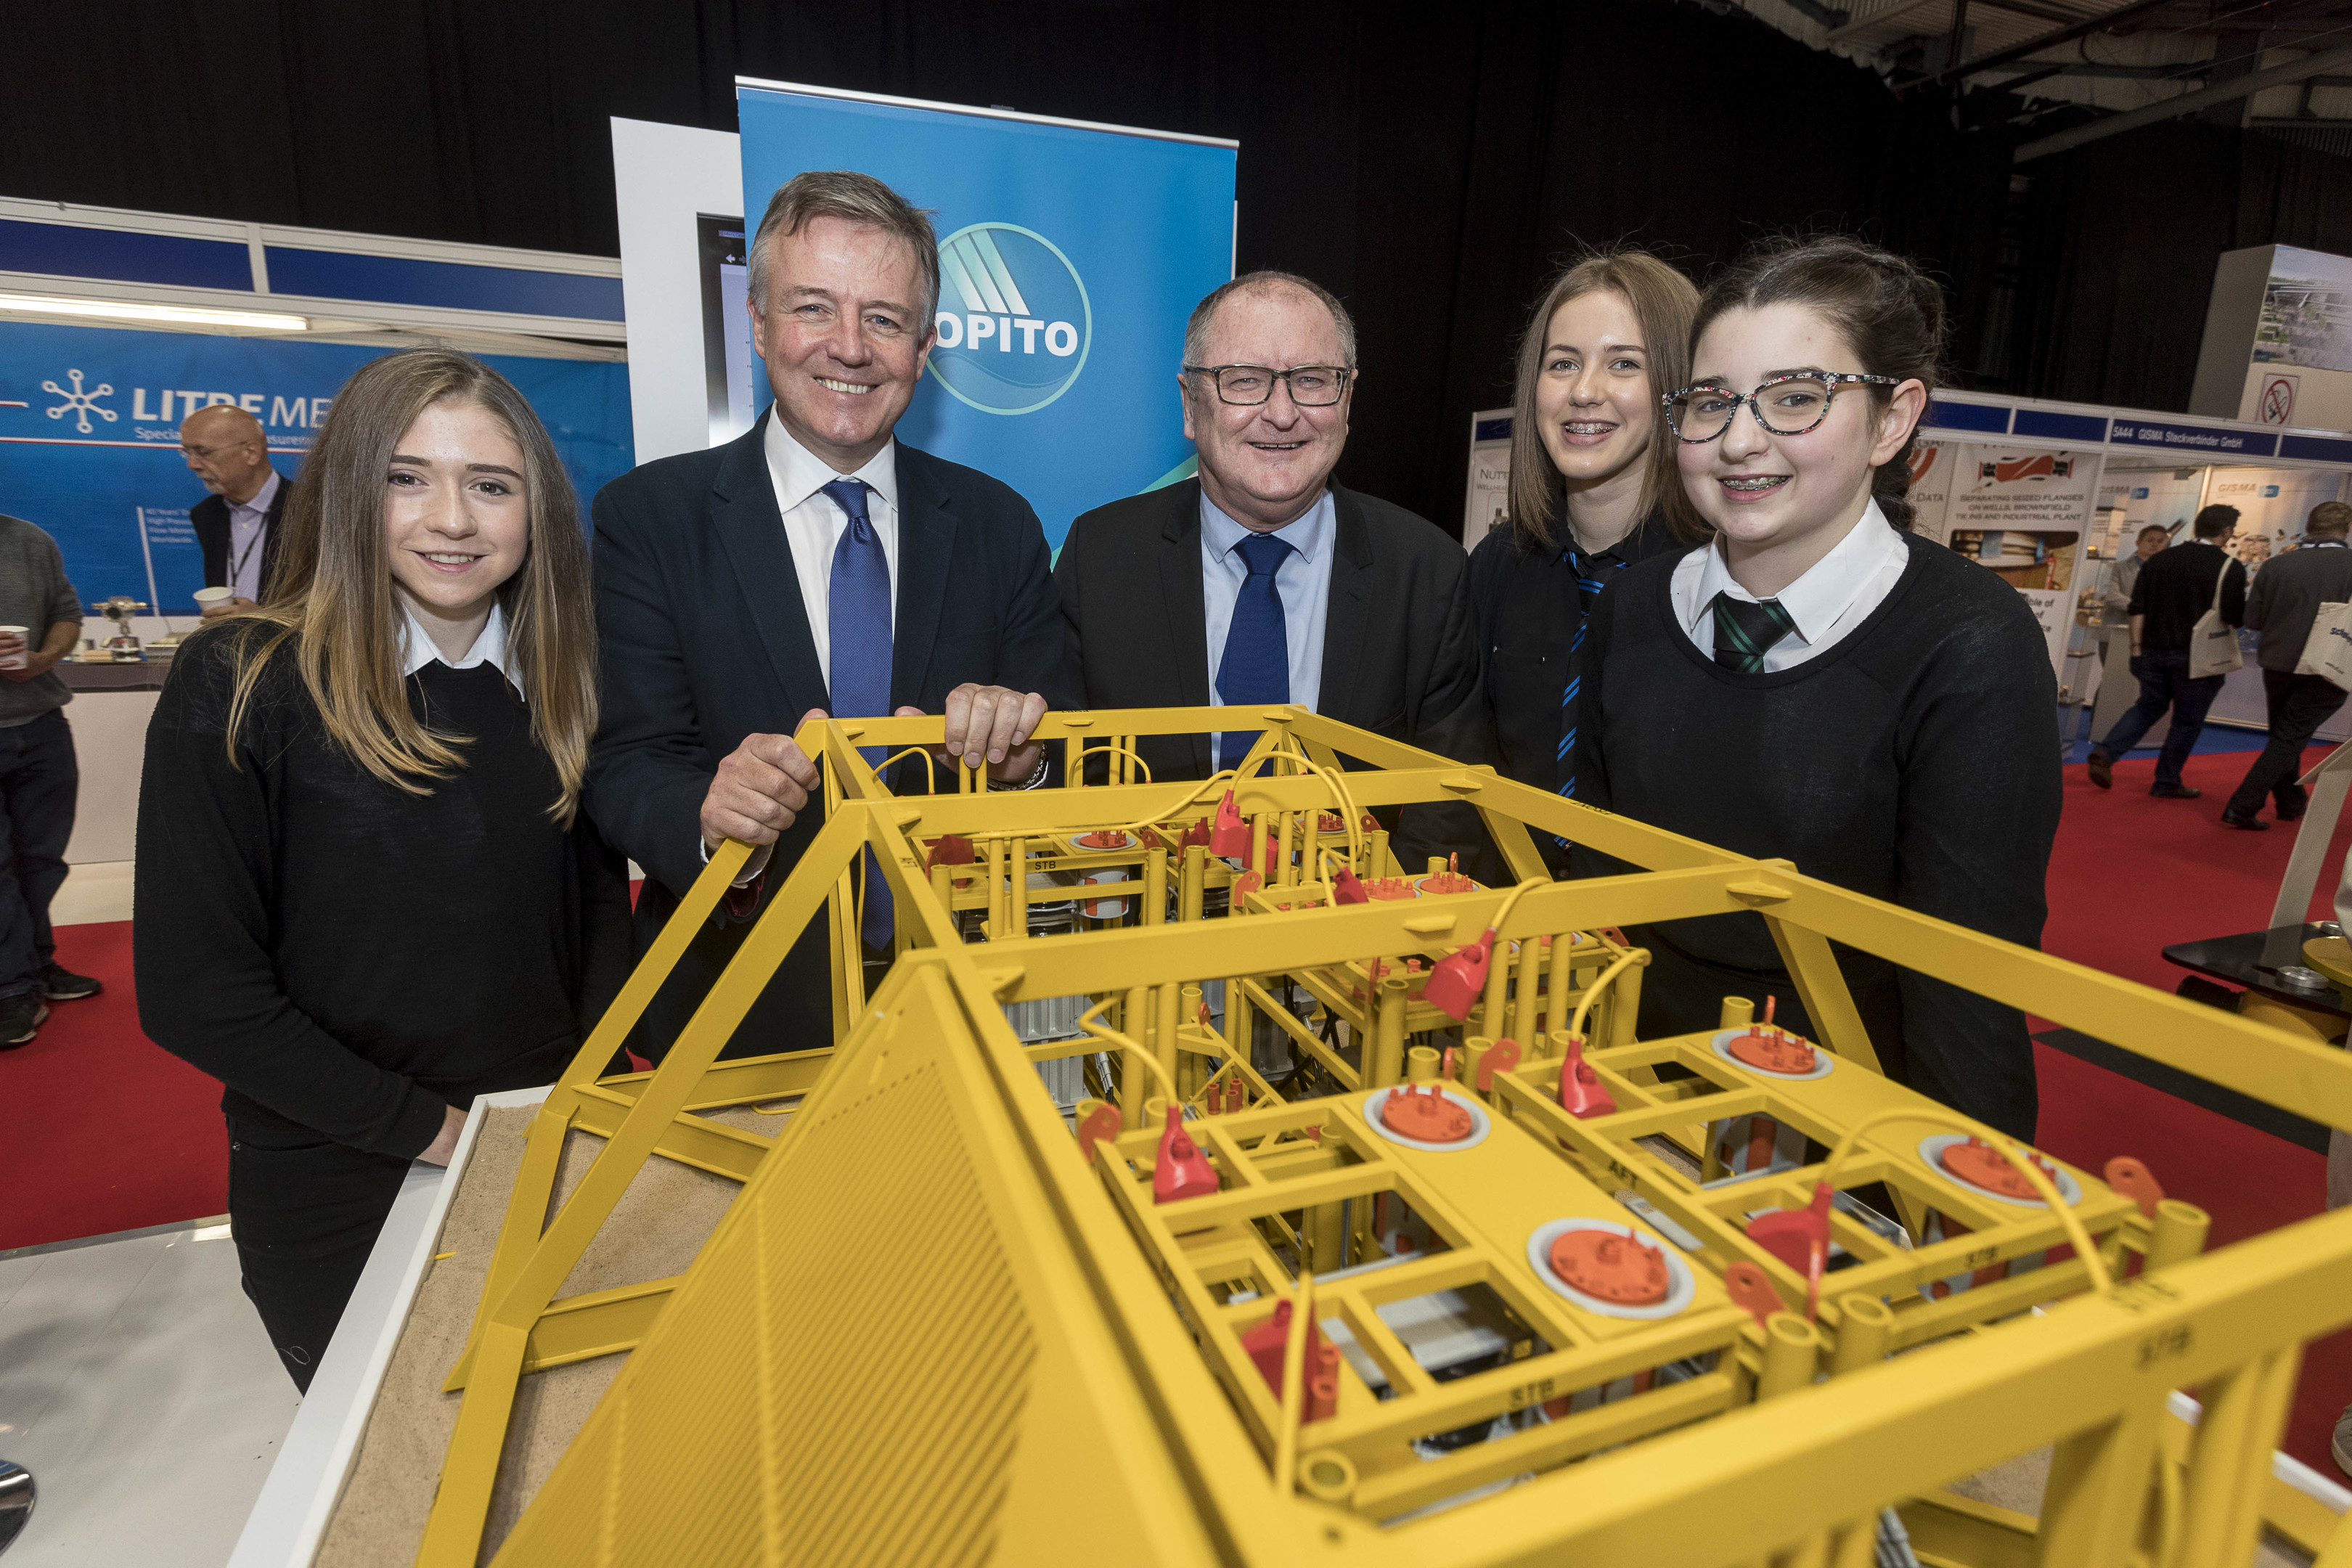 OPITO International chairman Gordon Ballard with OPITO chief executive John McDonald with Turriff Academy pupils Vicki Elder, Christina Mair and Molly Mathieson.jpg